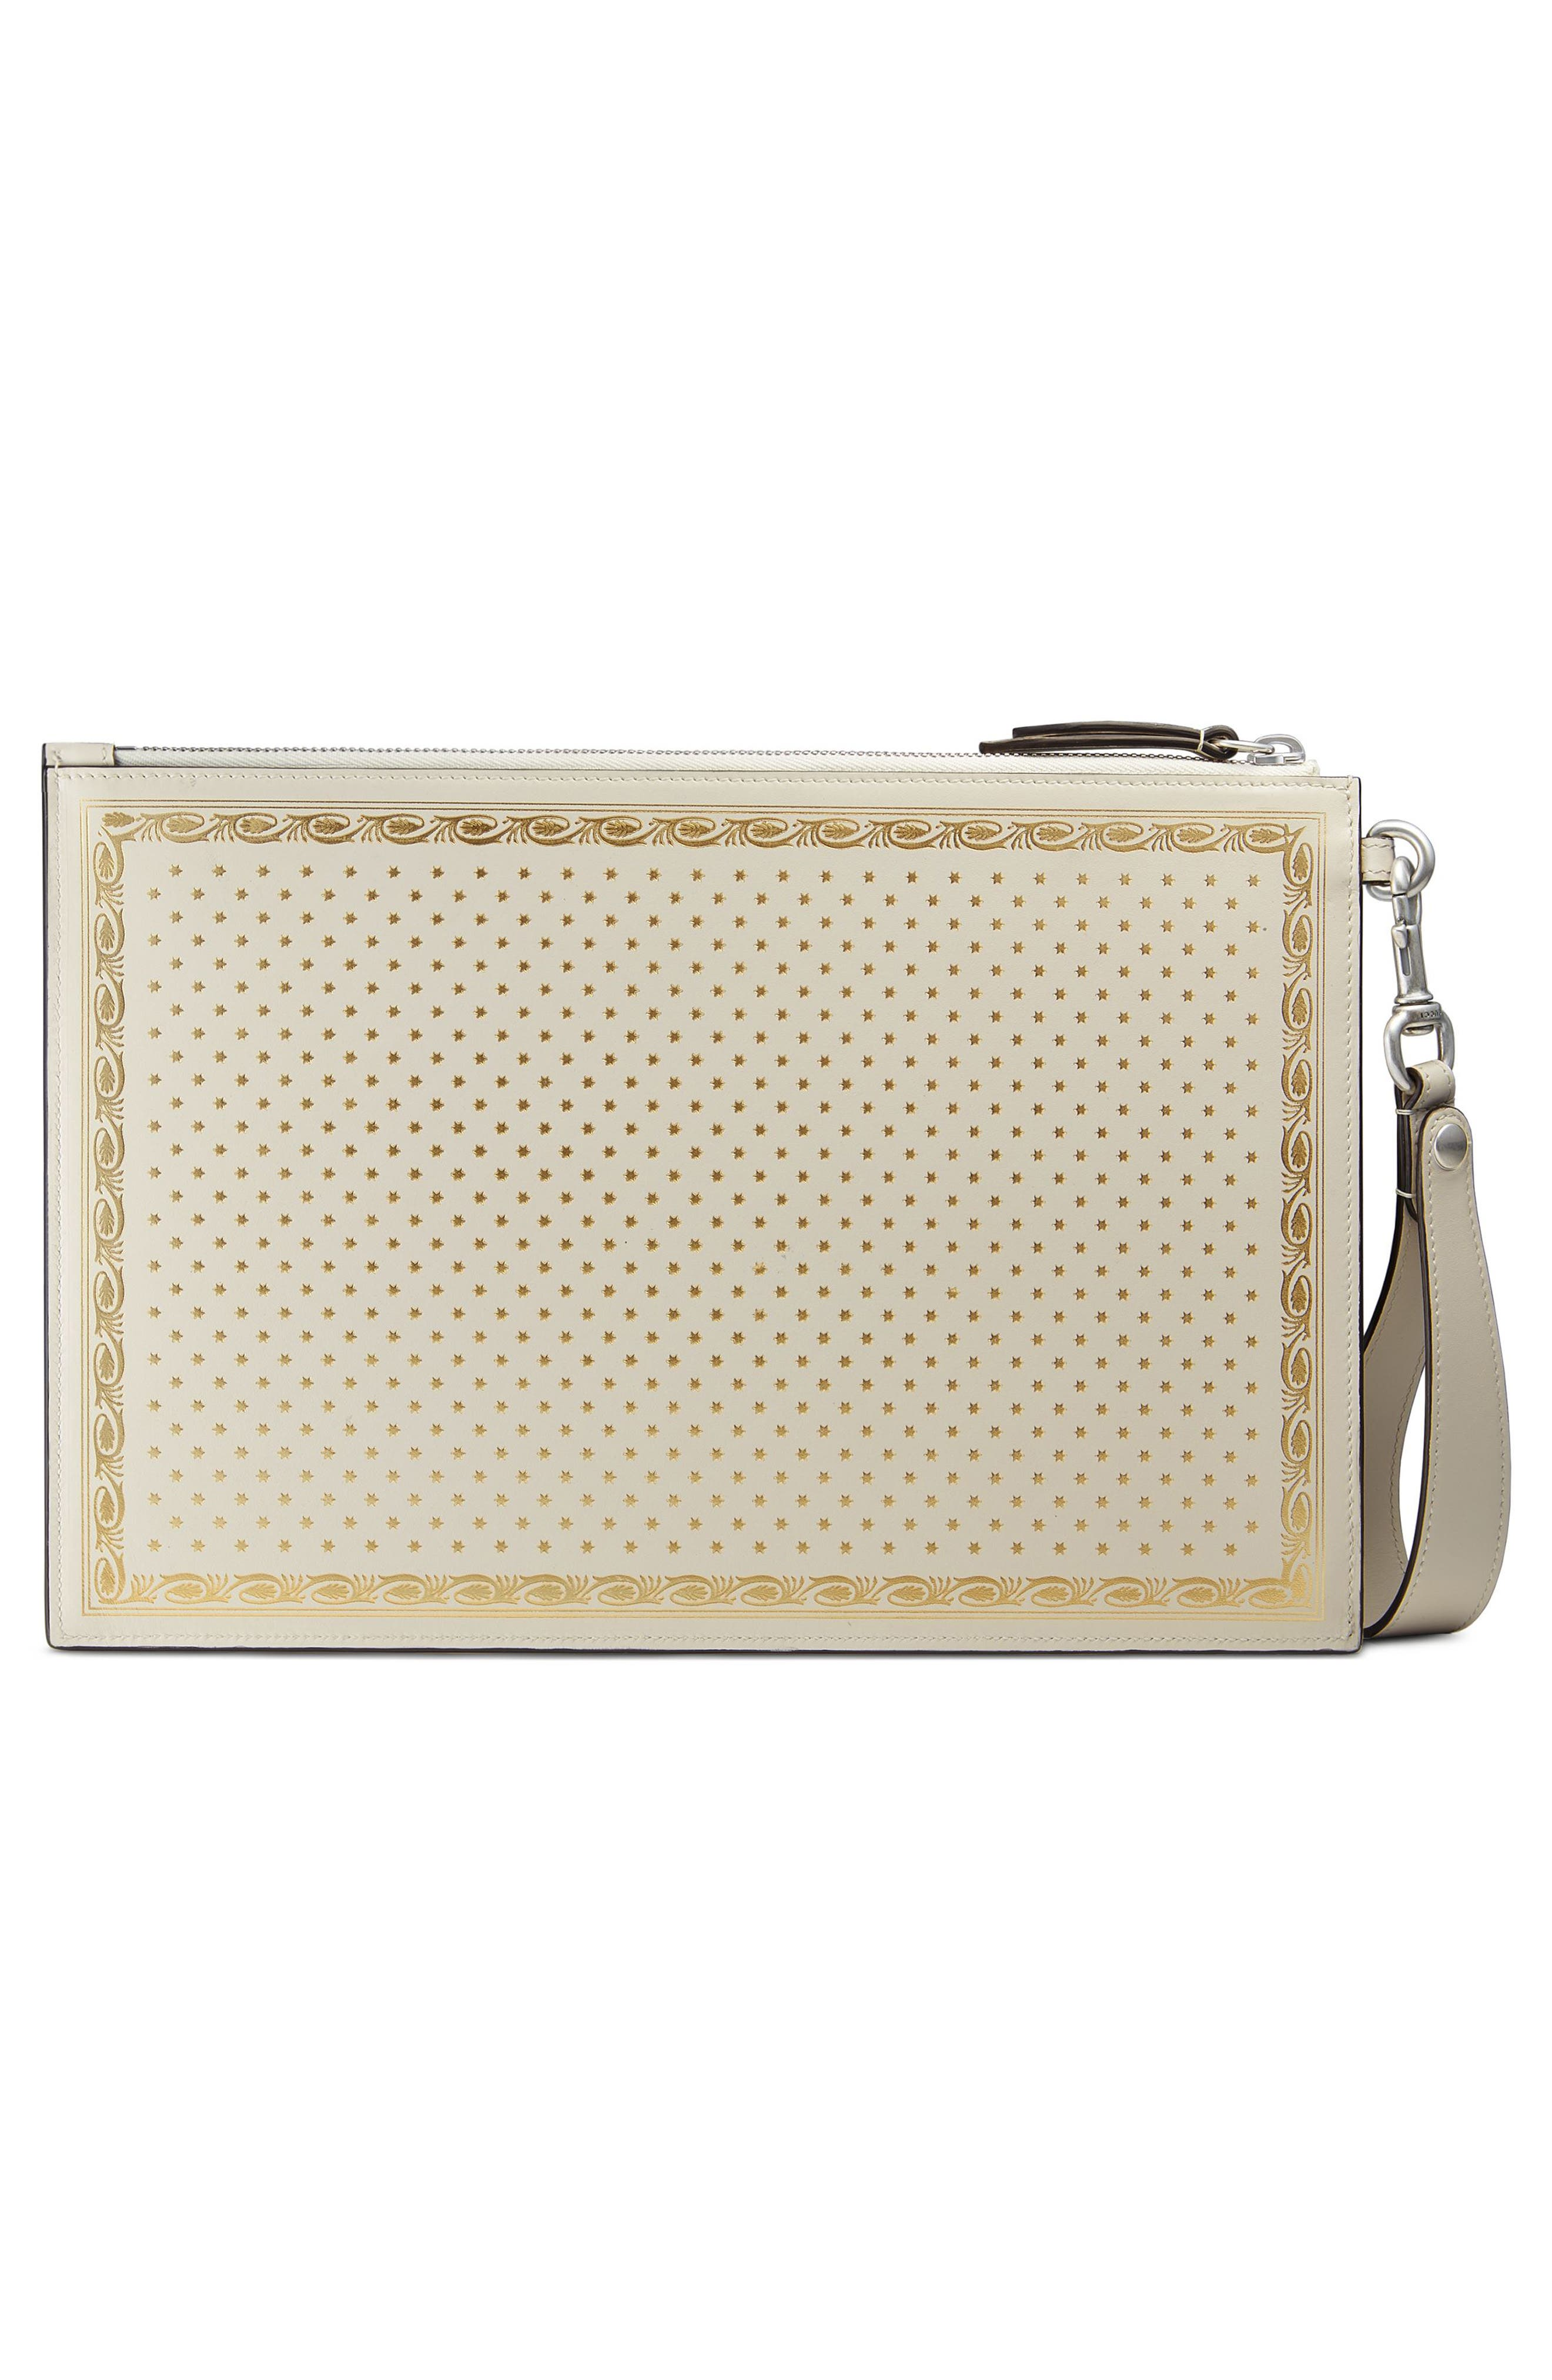 Guccy Moon & Stars Leather Zip Pouch,                             Alternate thumbnail 3, color,                             Mystic White/ Oro